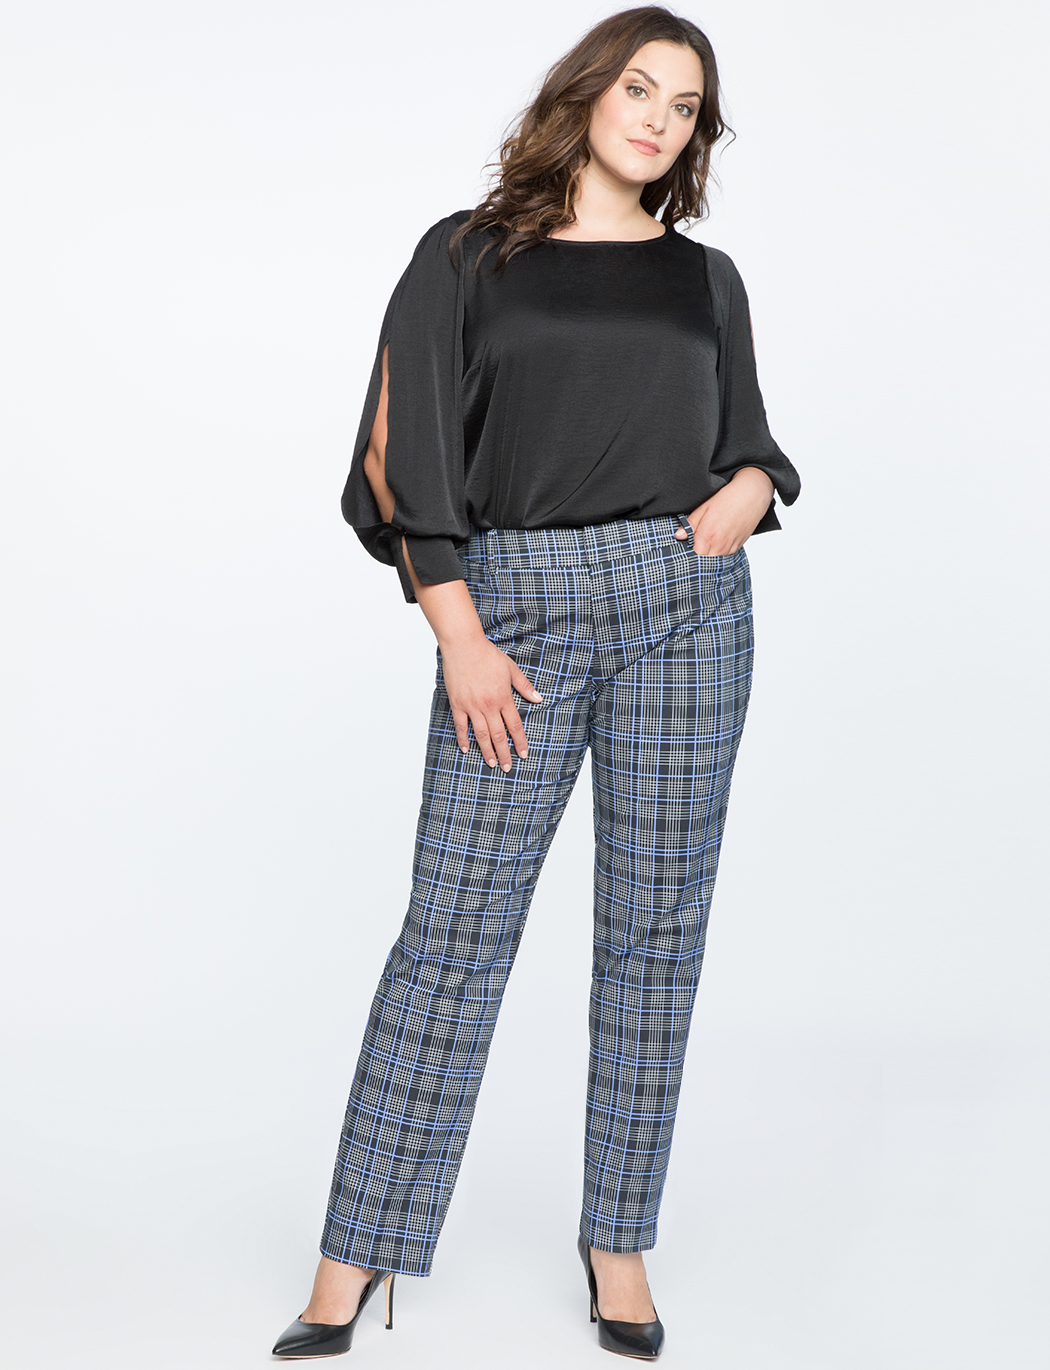 Kady Plaid Pant | Women\'s Plus Size Pants | ELOQUII